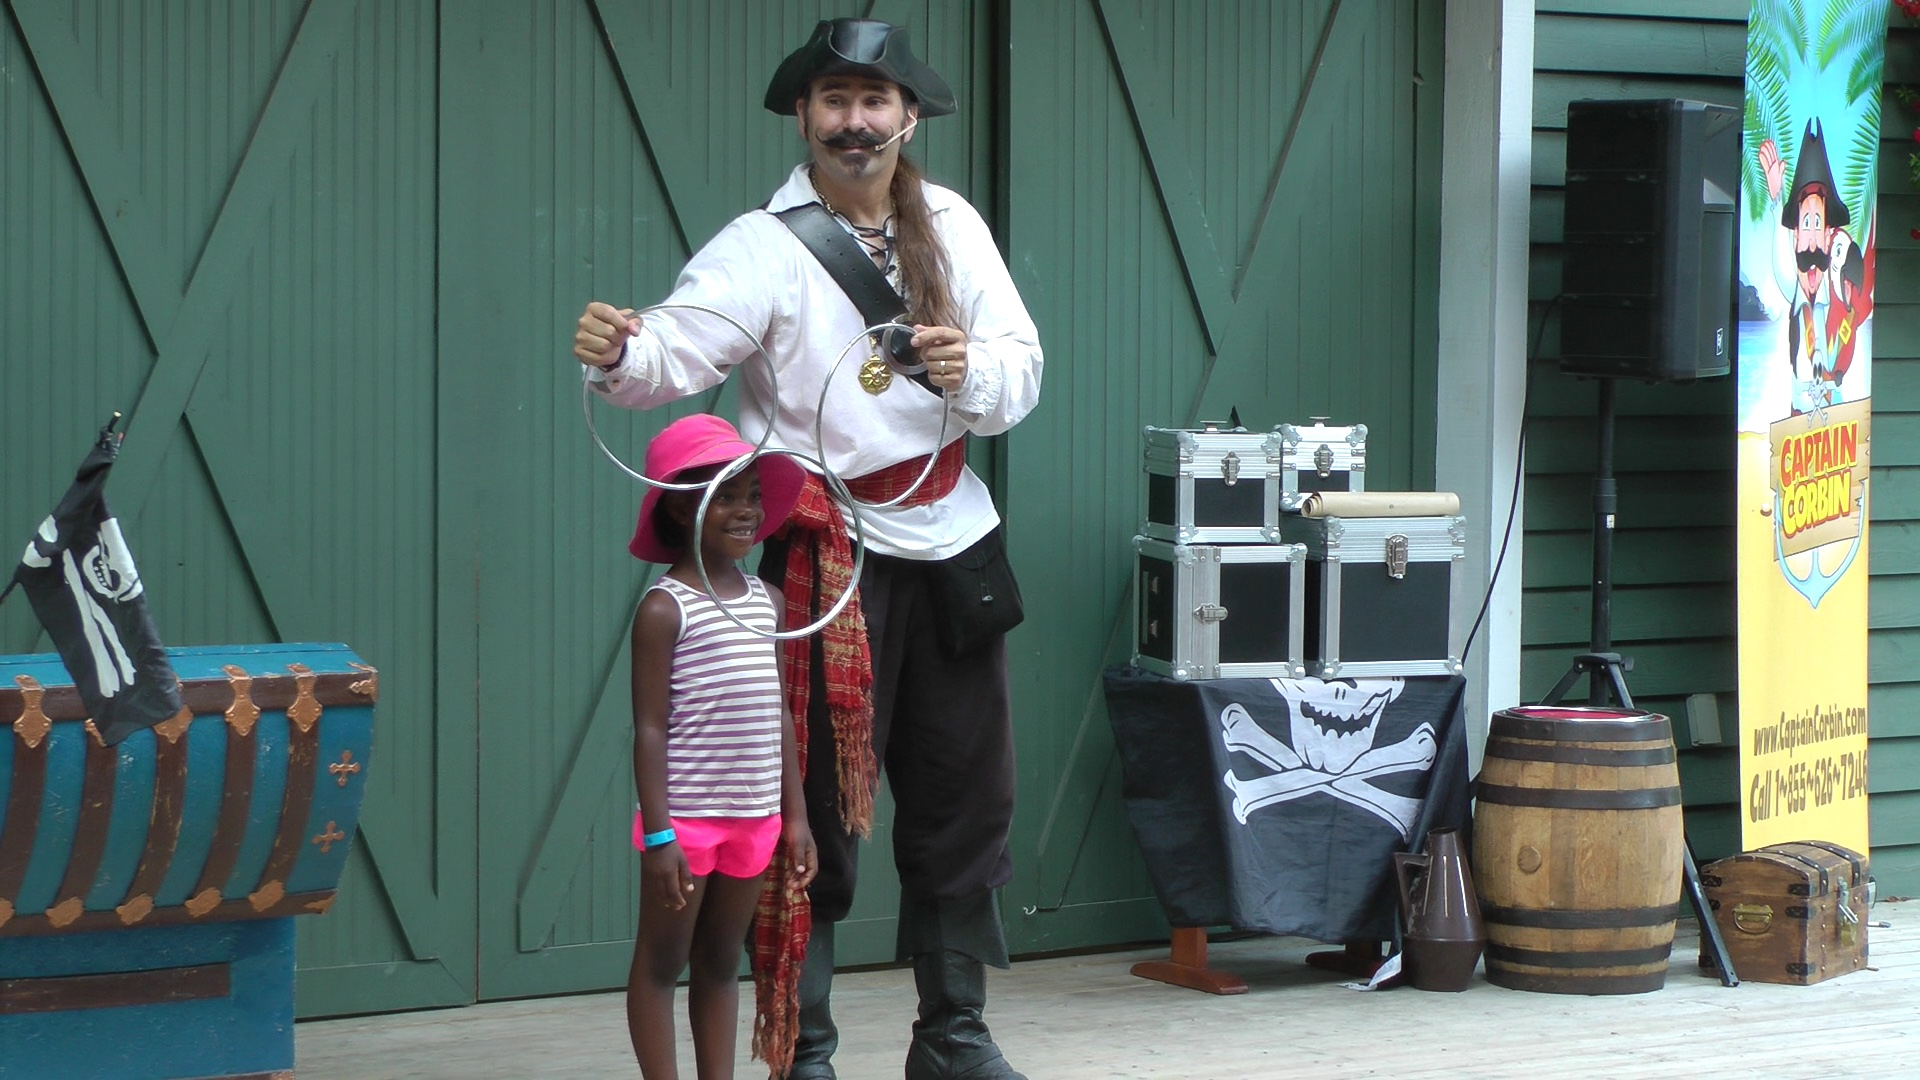 Corbin performing a pirate magic show at Storybook gardens